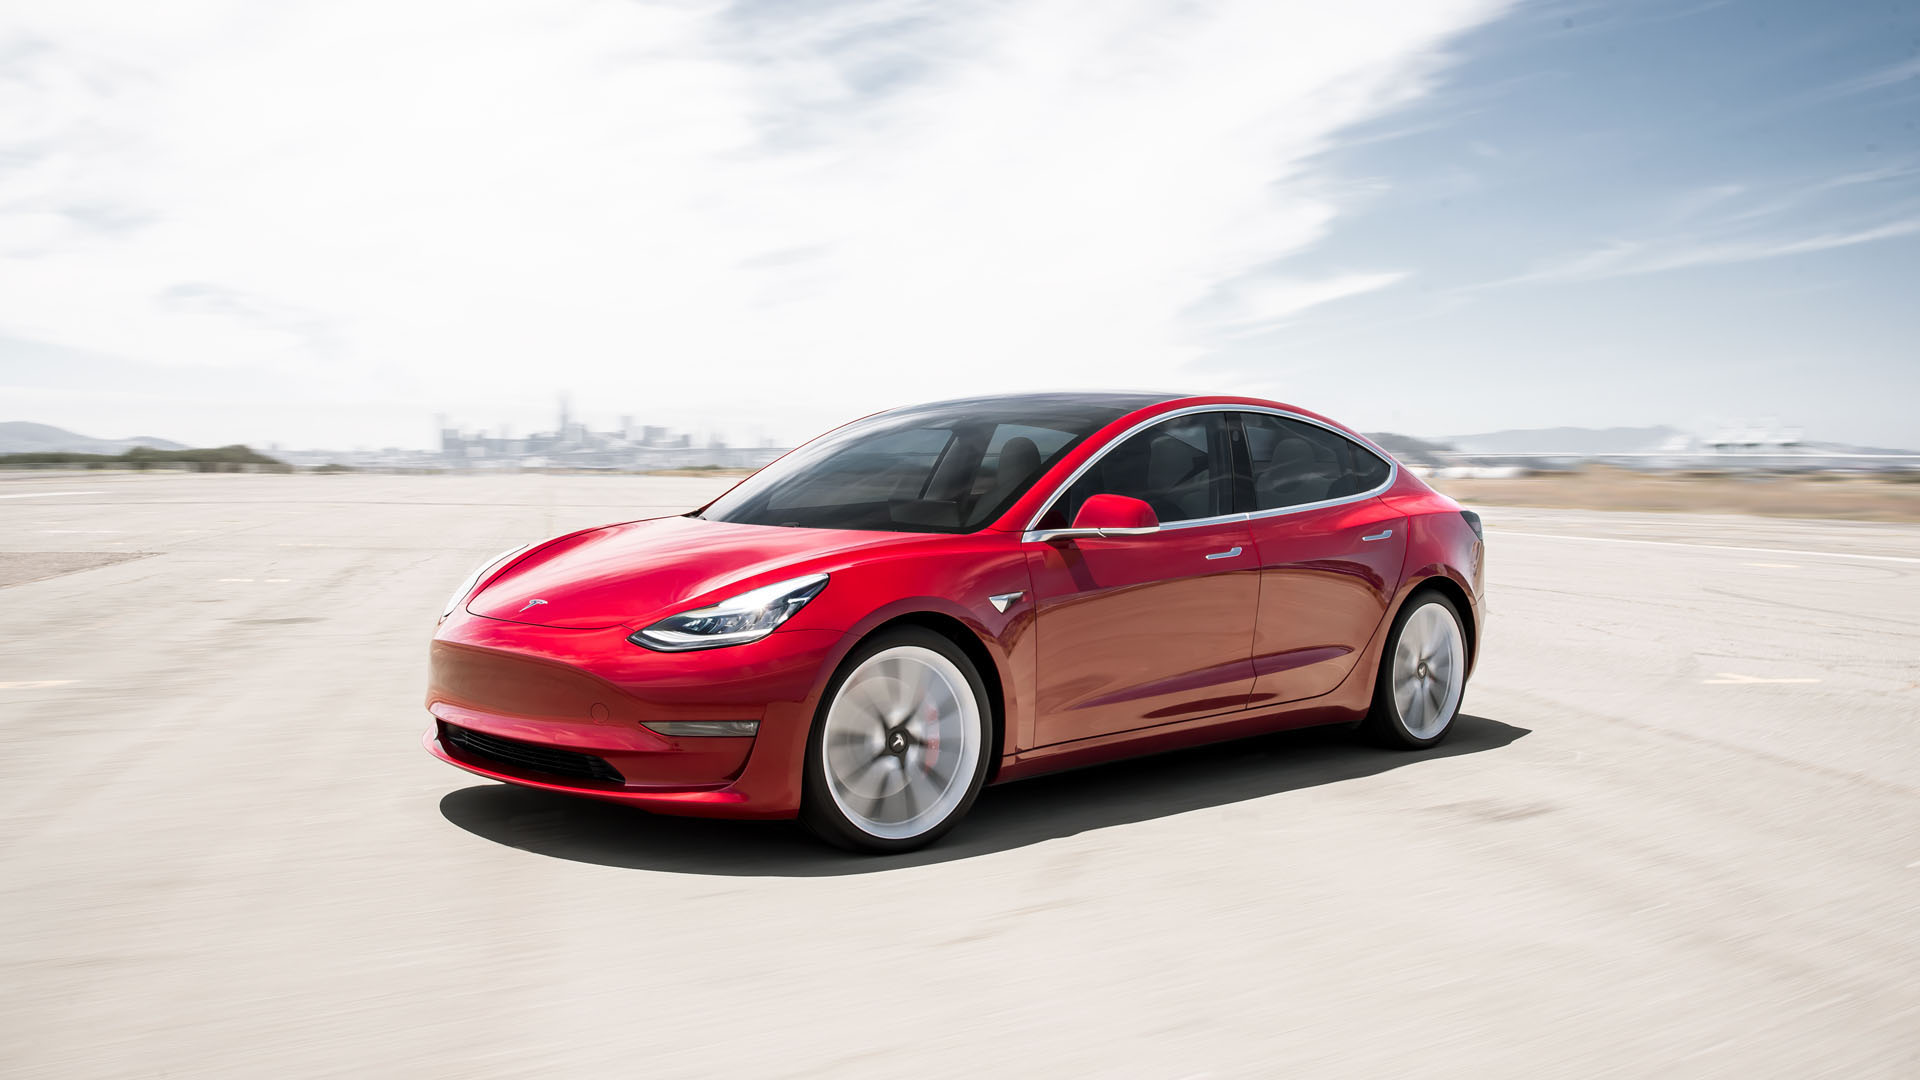 b71fad6a-tesla-model-3-performance-1.jpg